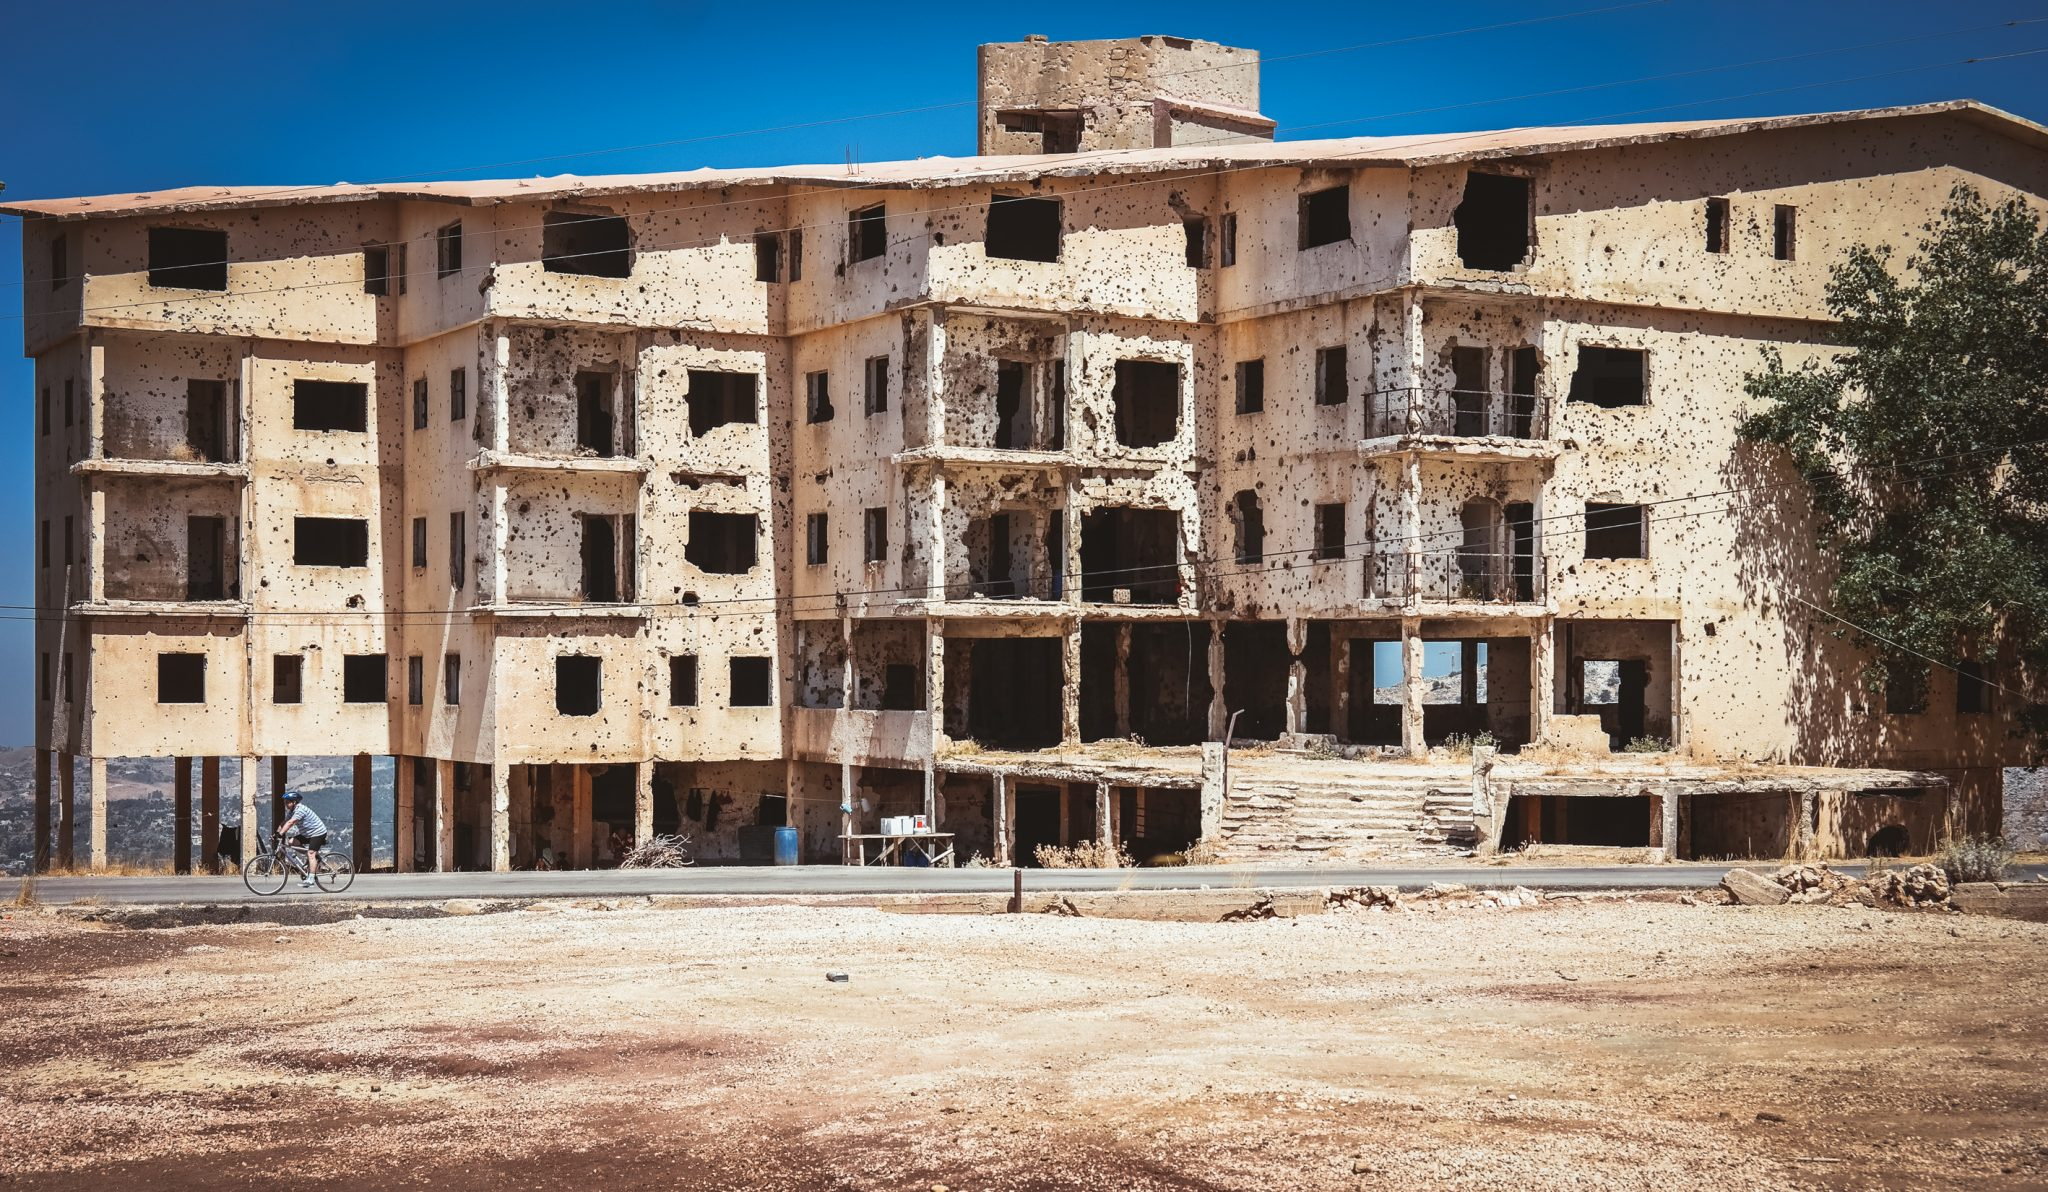 War destroyed hotel with bullet holes with a bike passing by in Qanat Bakish Lebanon Photo by Jo Kassis